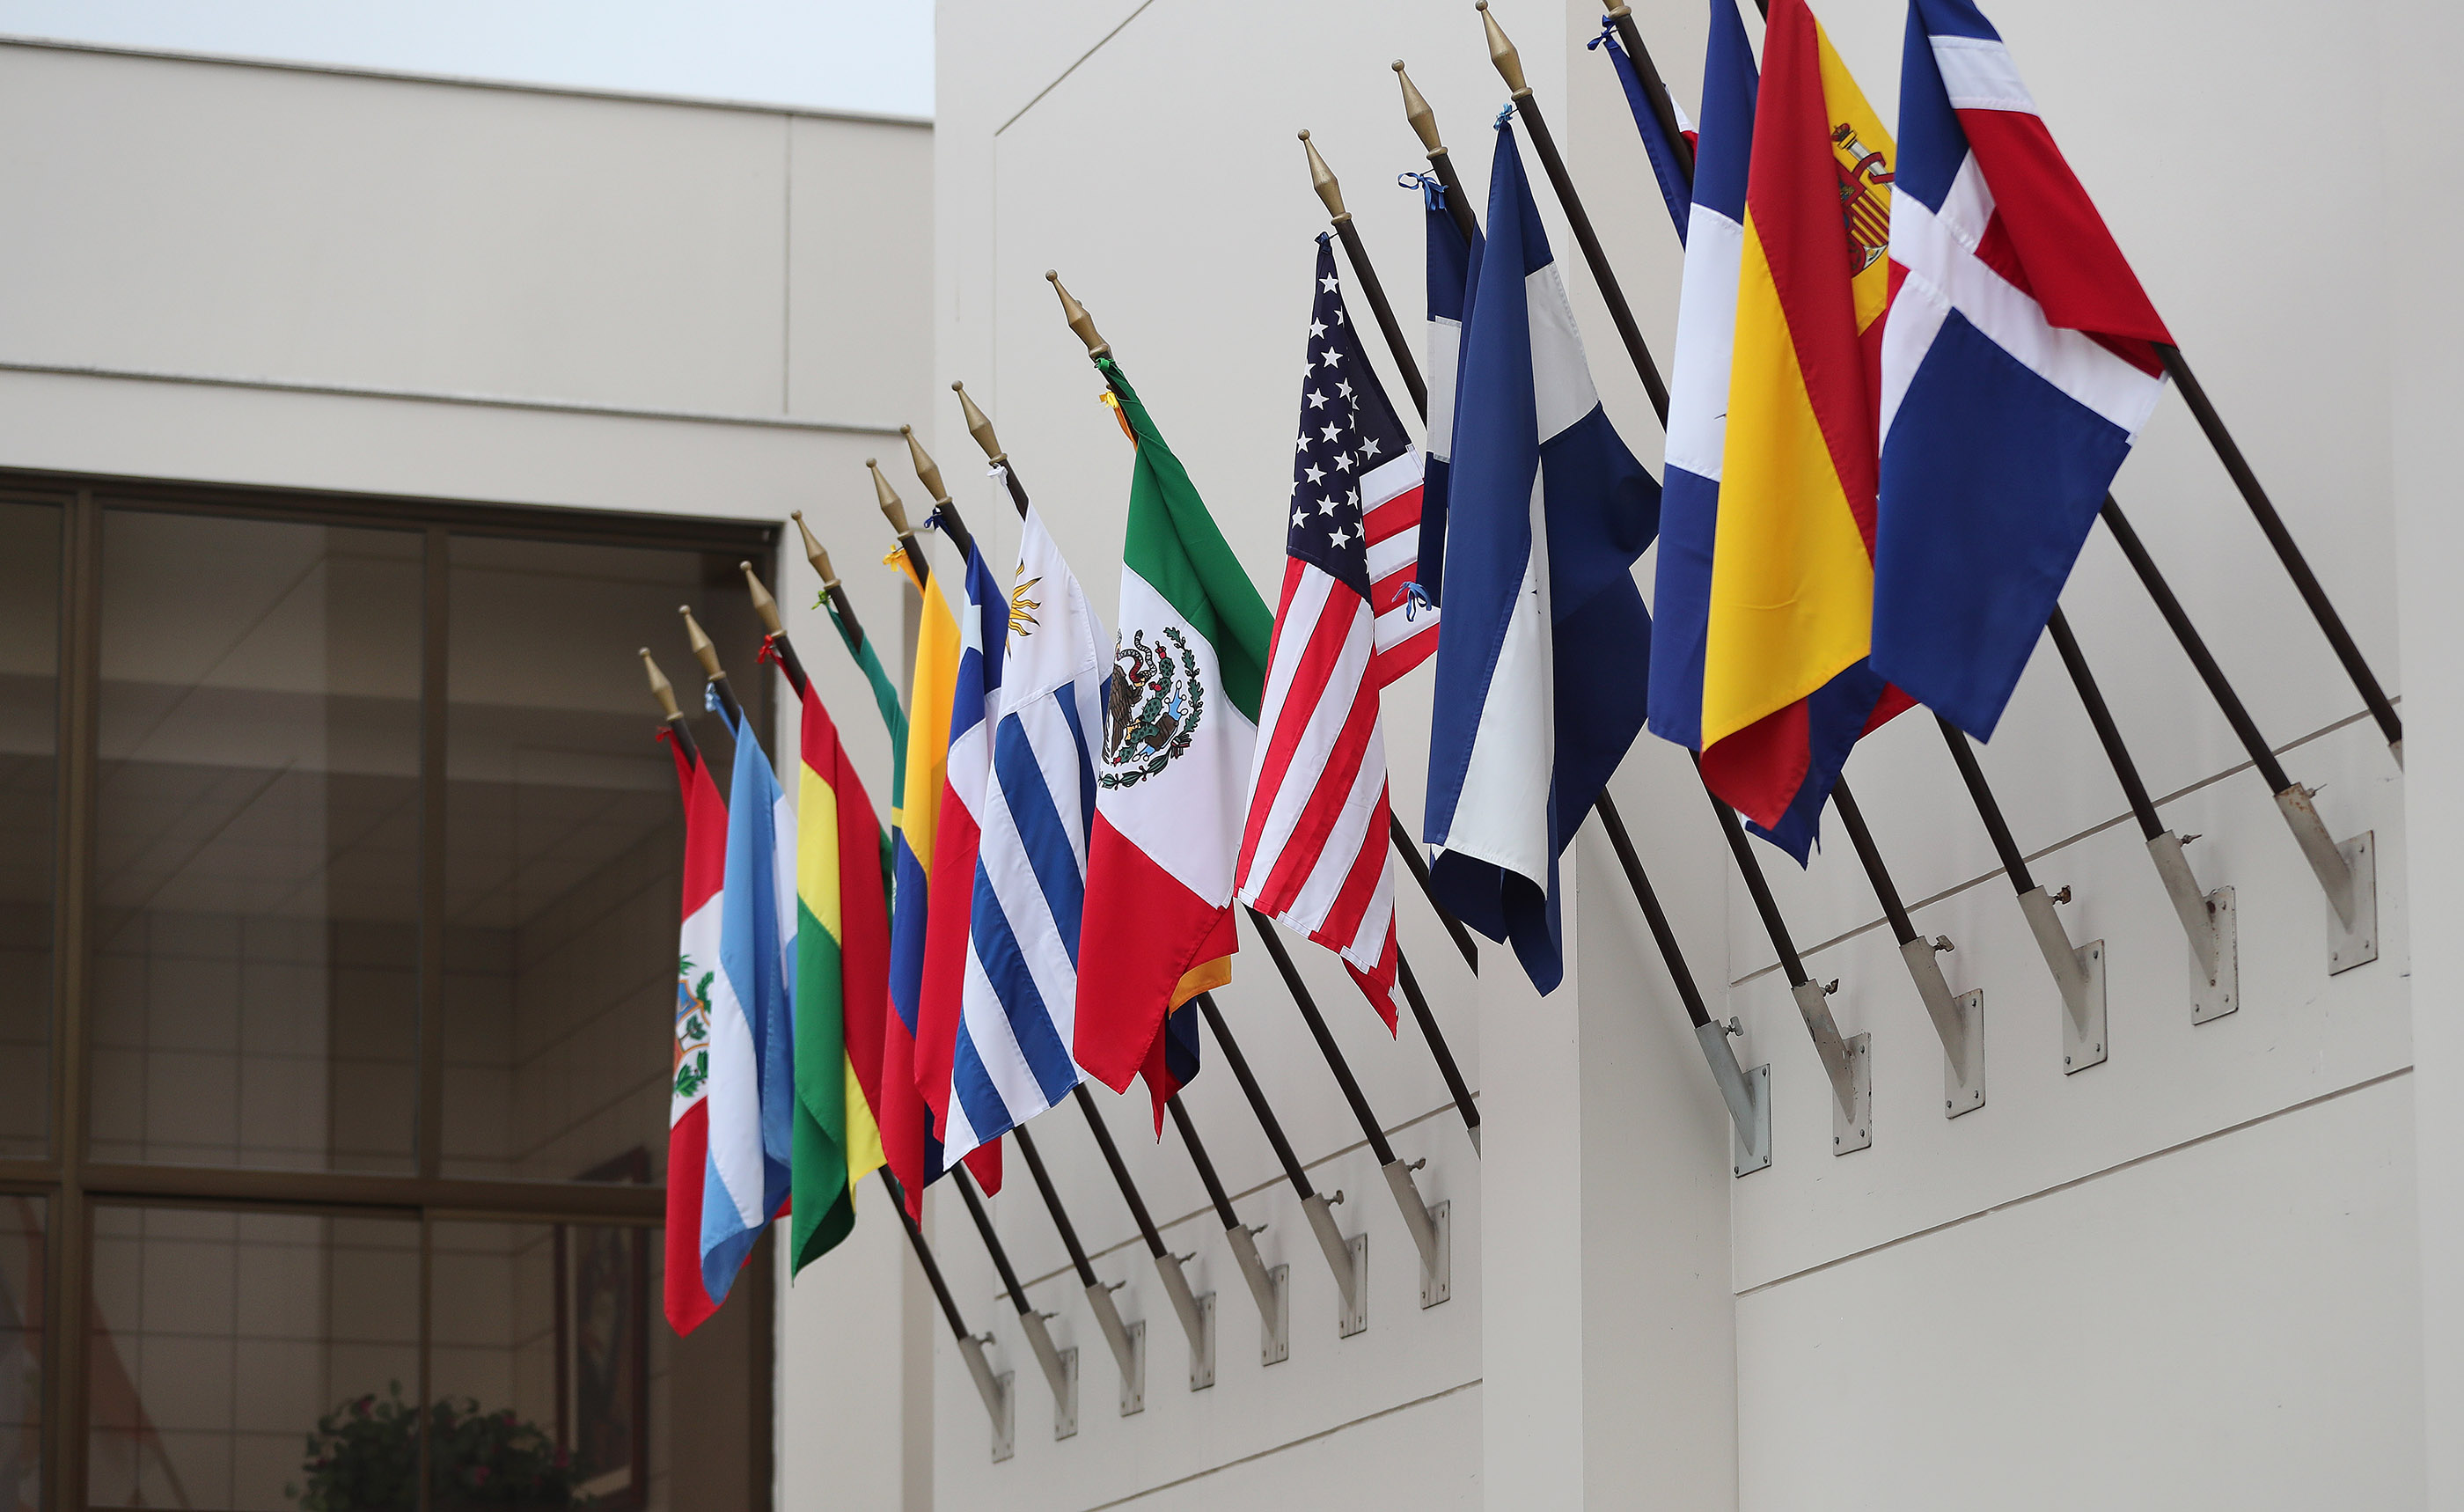 Flags are displayed at the Peru Missionary Training Center in Lima, Peru on Friday, Oct. 19, 2018.